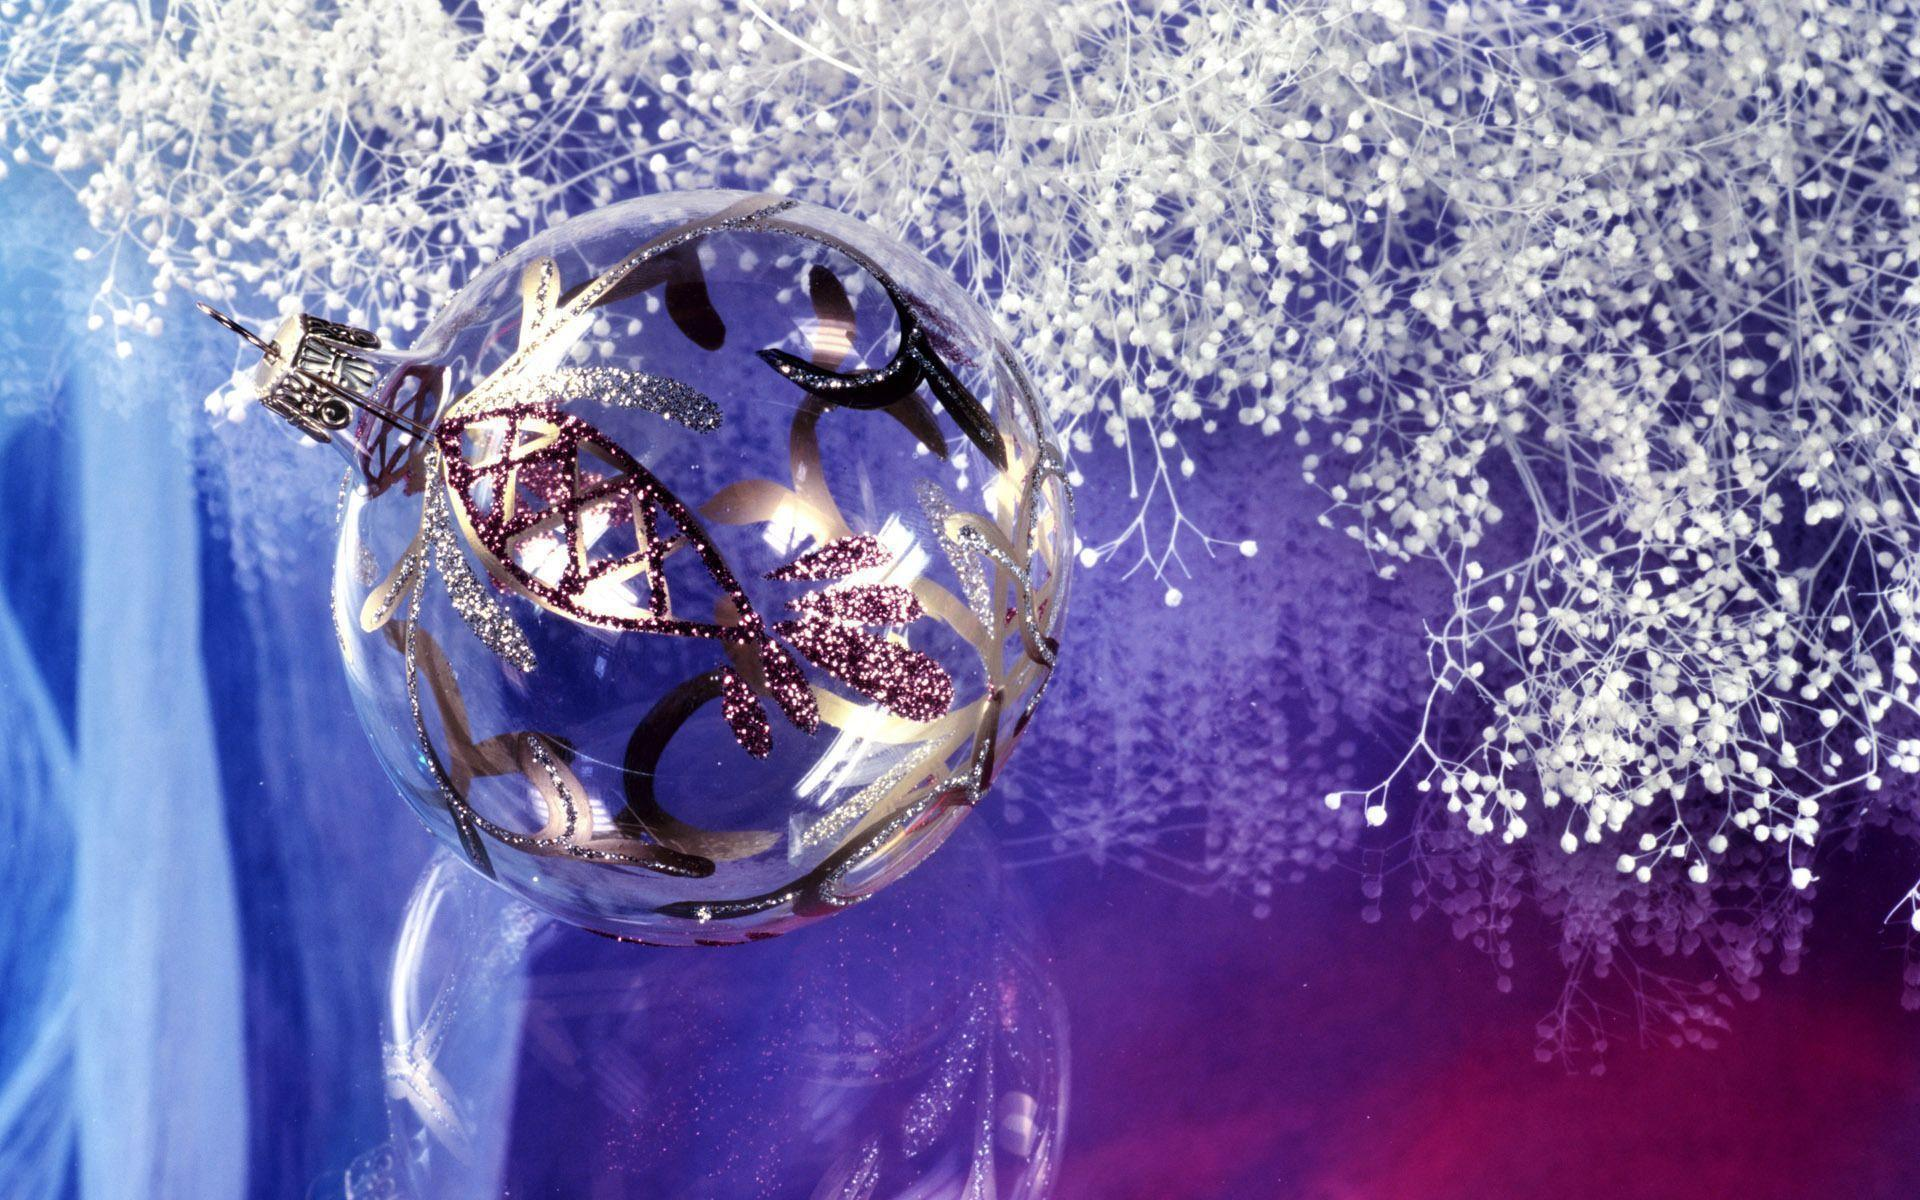 Purple and silver christmas decorations - Silver Christmas Decorations Christmas Wallpaper 22229297 Fanpop